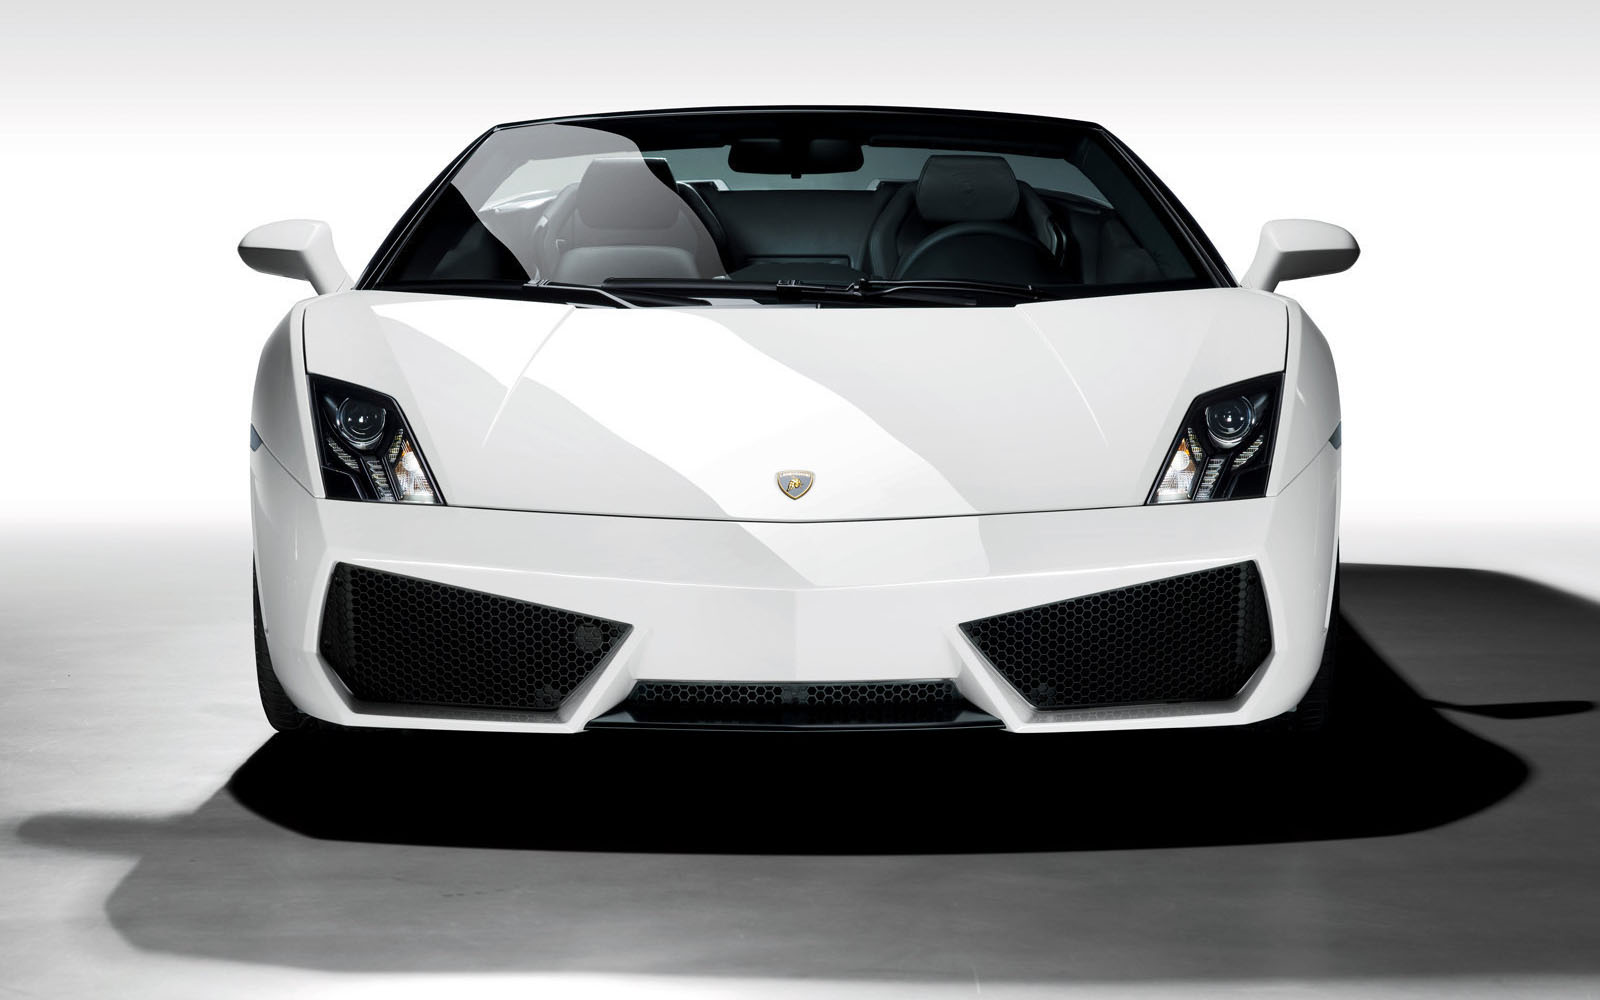 Lamborghini Gallardo Spyder Wallpapers